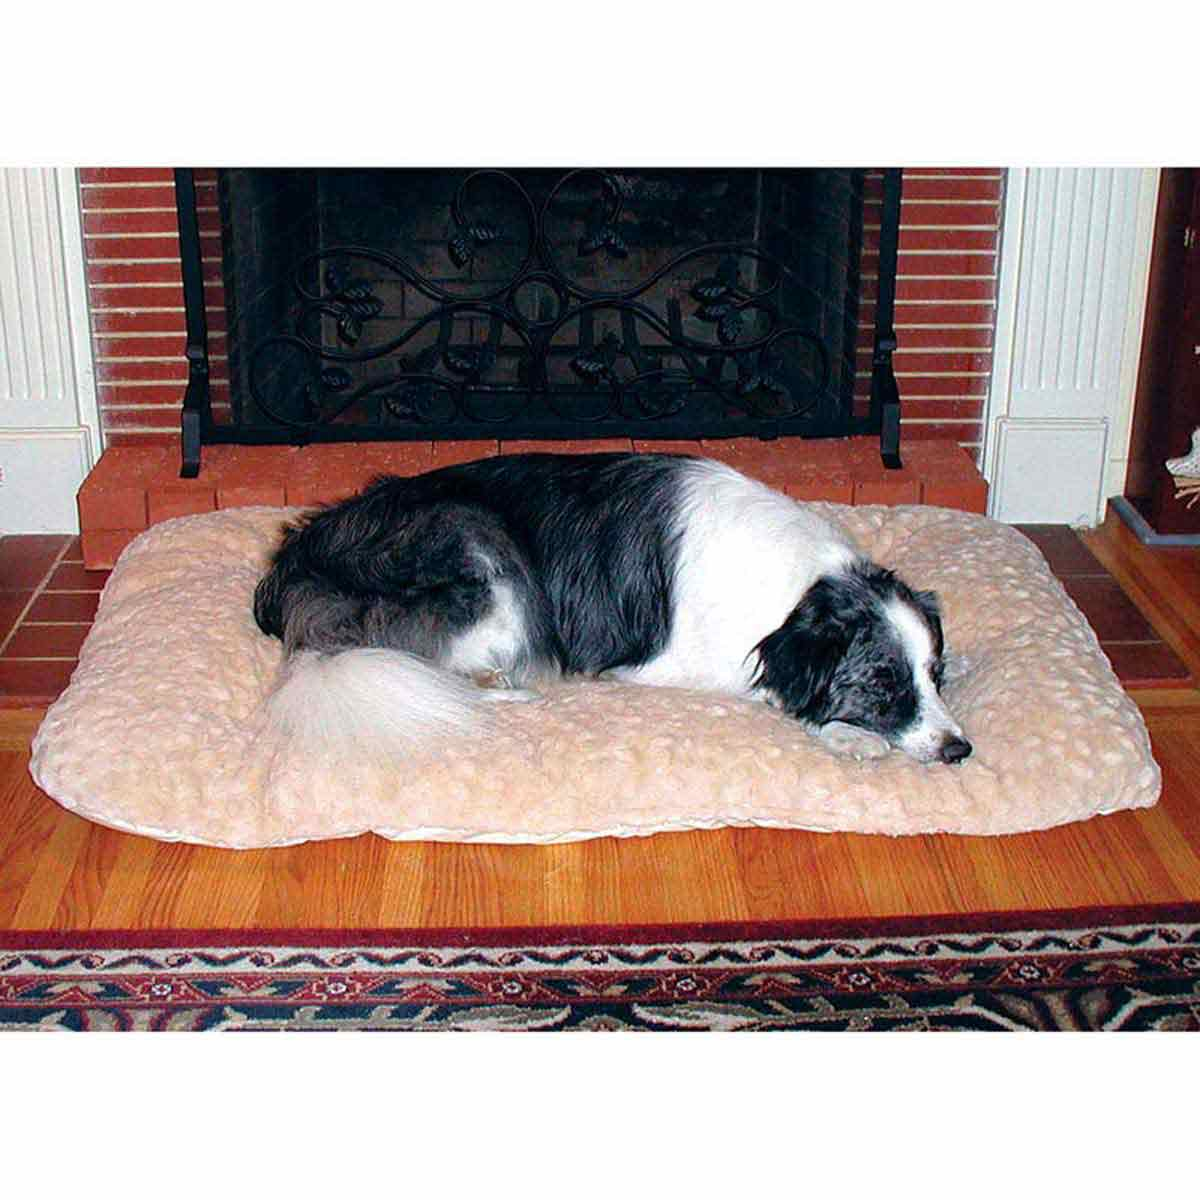 Tan Blush Snoozzy Comforter Pet Bed - 47 inches by 28 inches